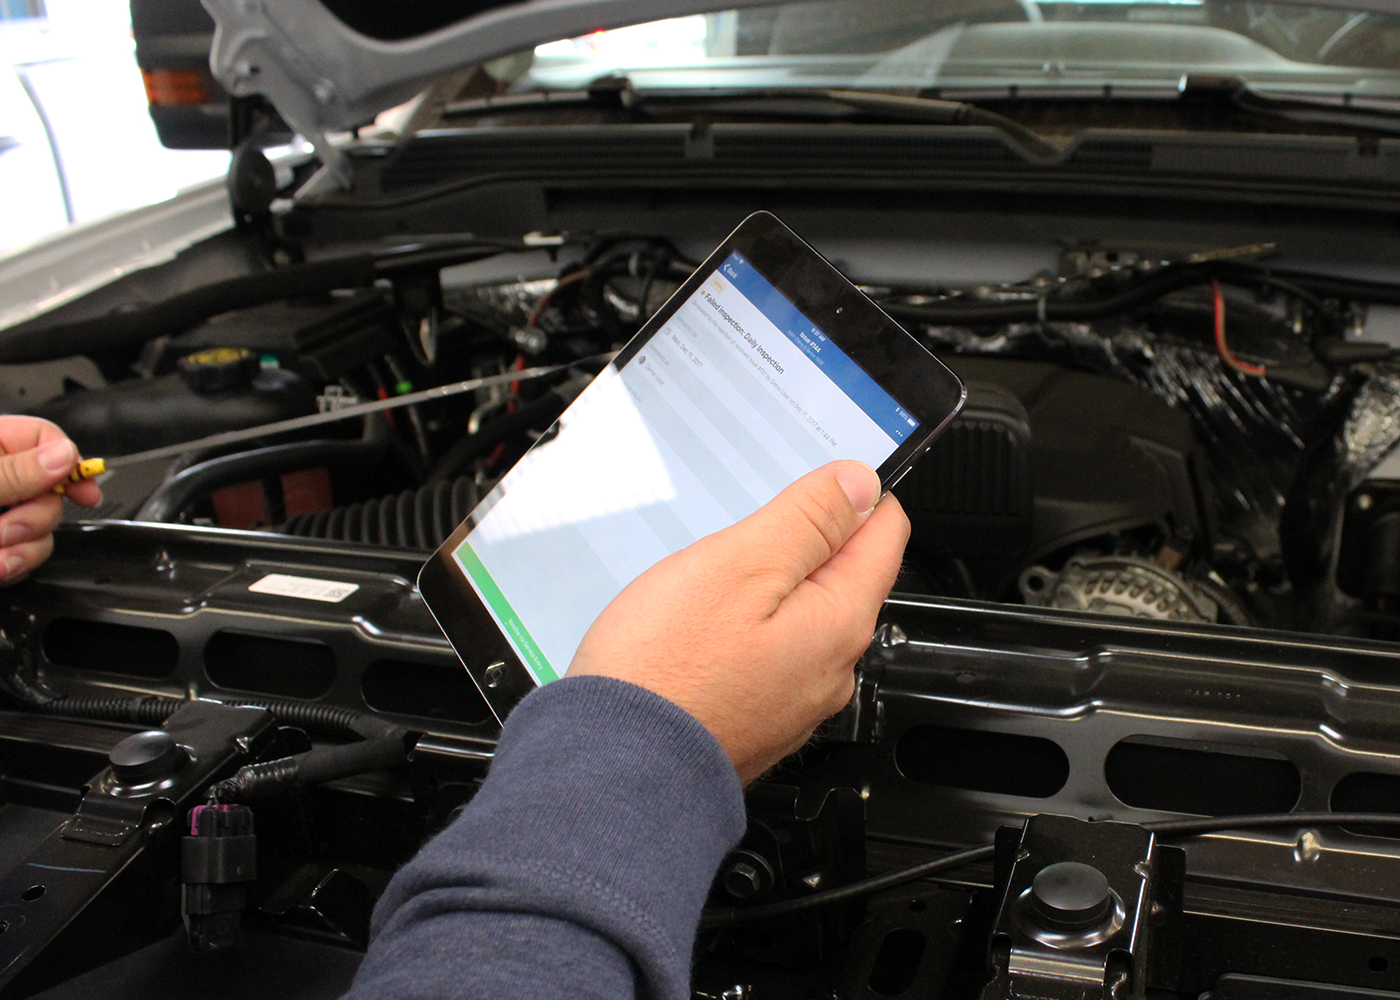 vehicle-inspection-checklist-a-guide-to-smarter-more-efficient-inspections